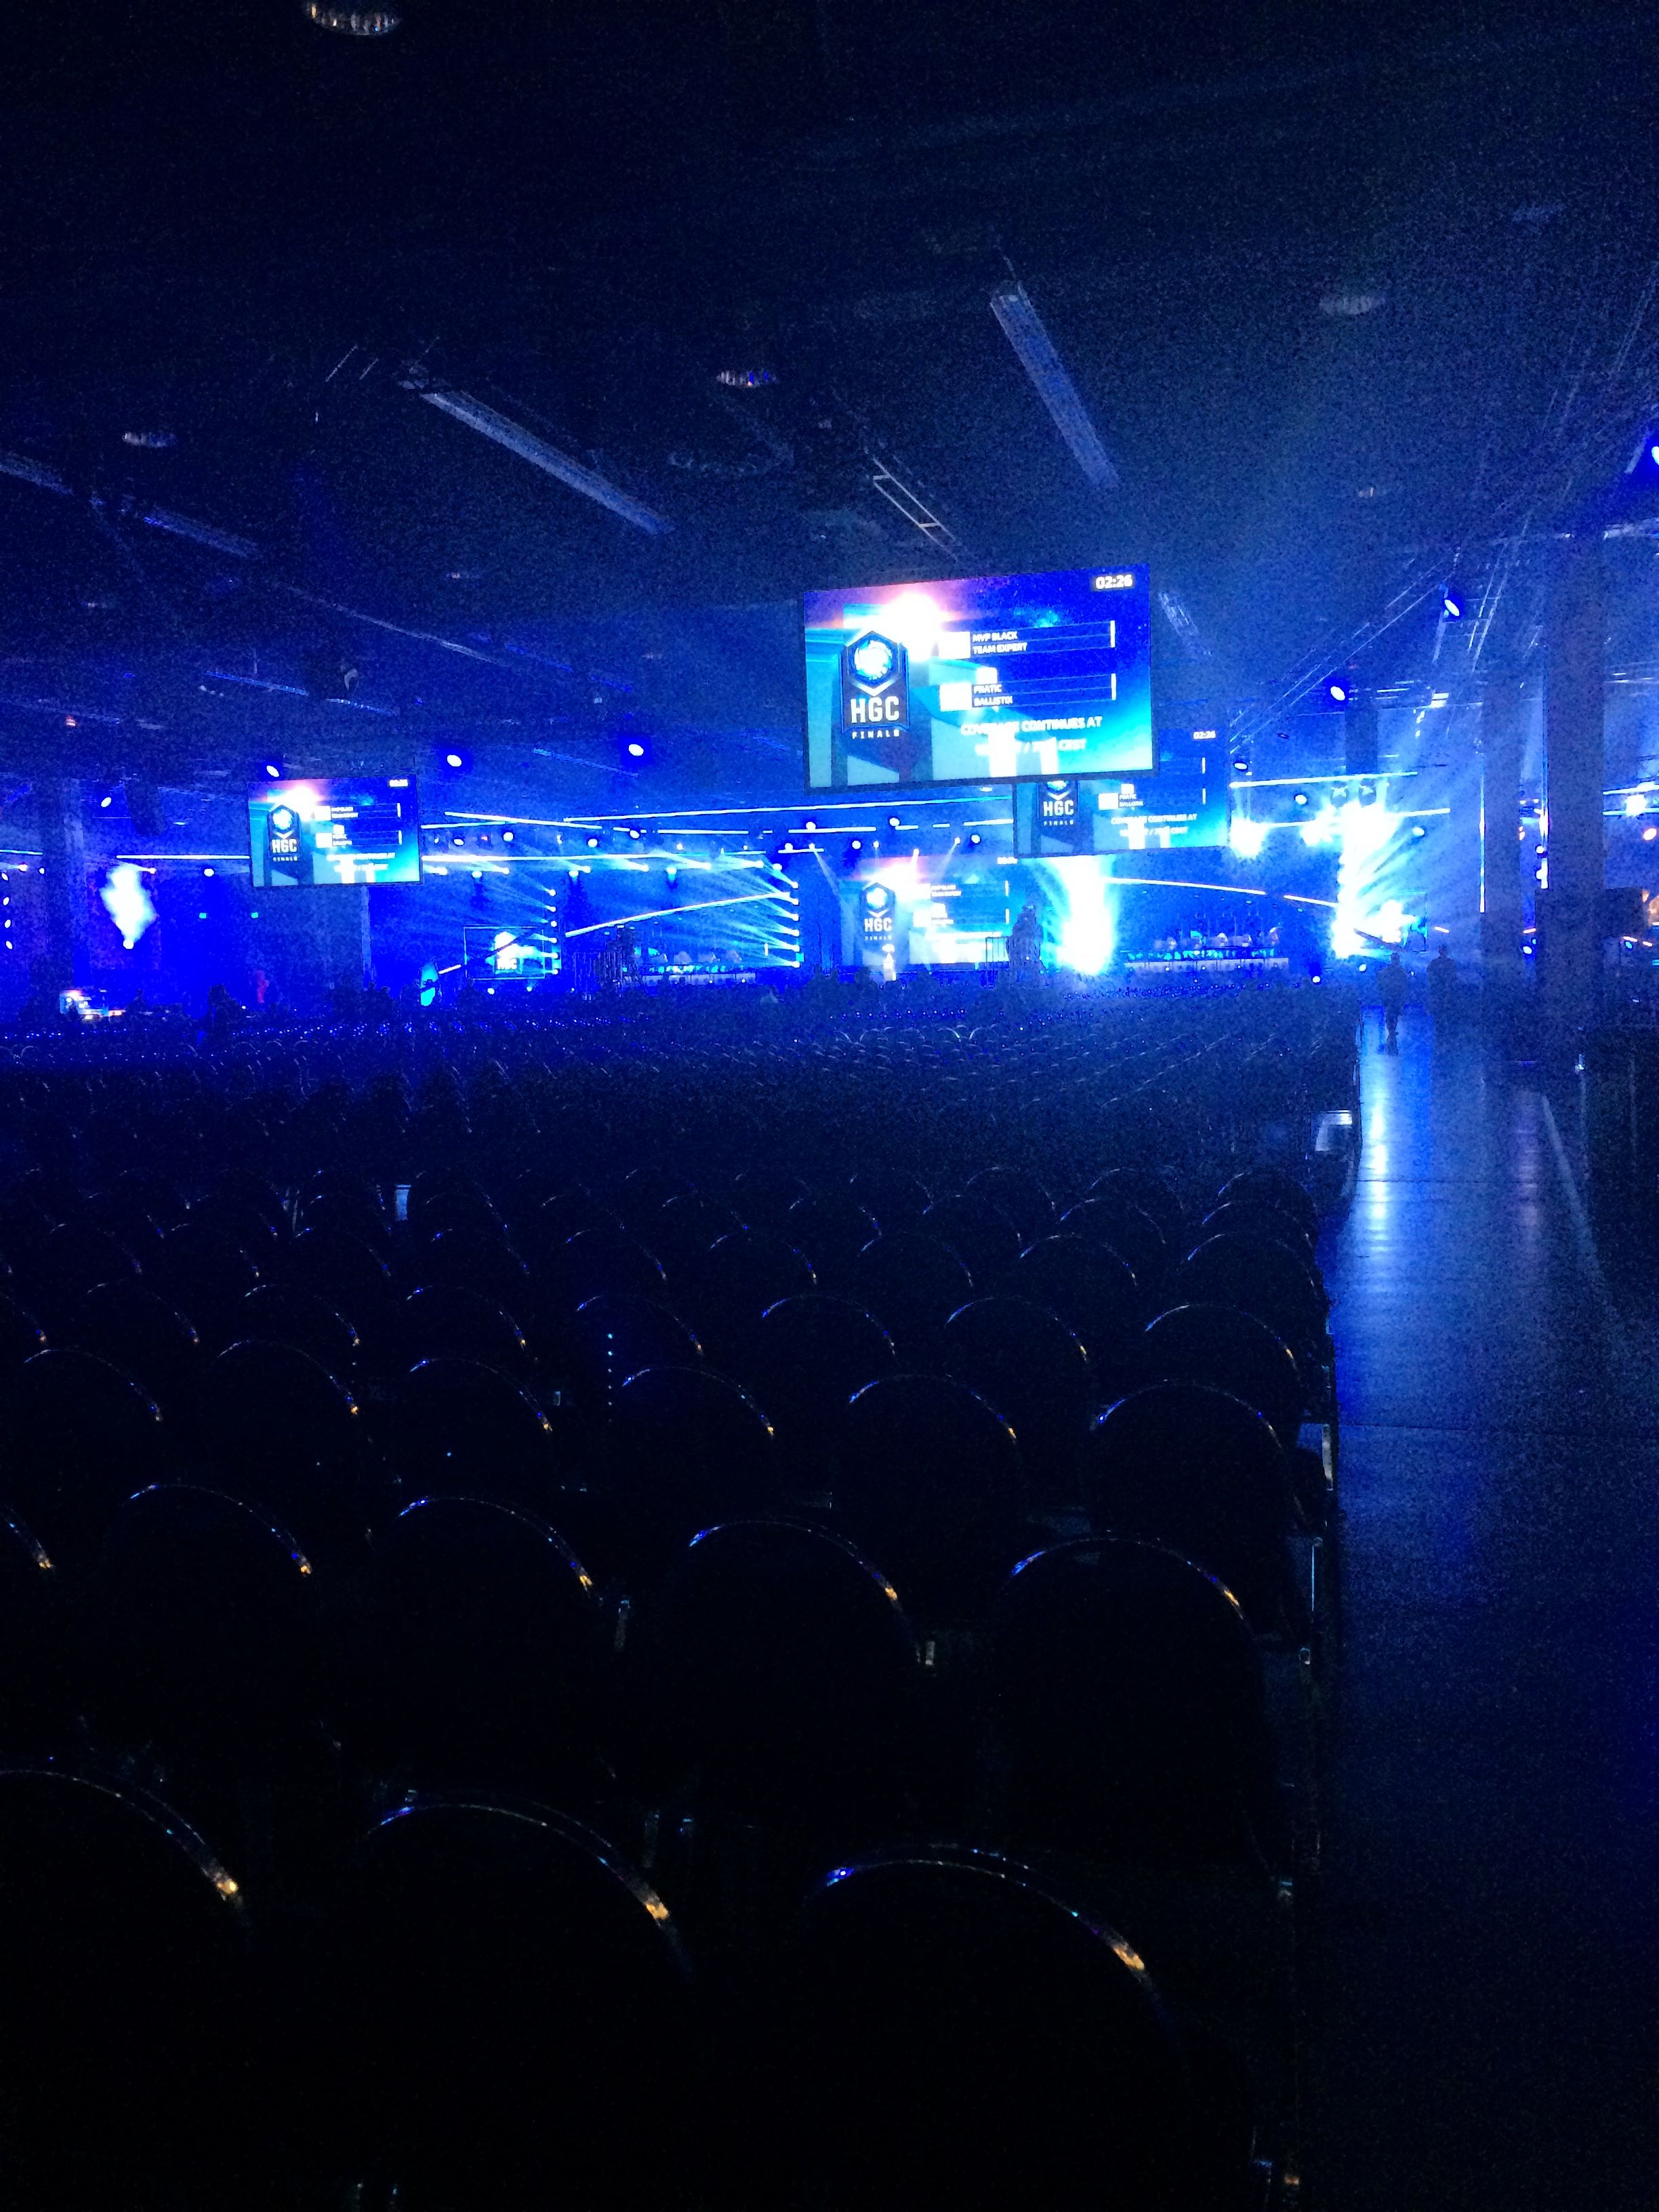 HGC Finals at BlizzCon 2017.